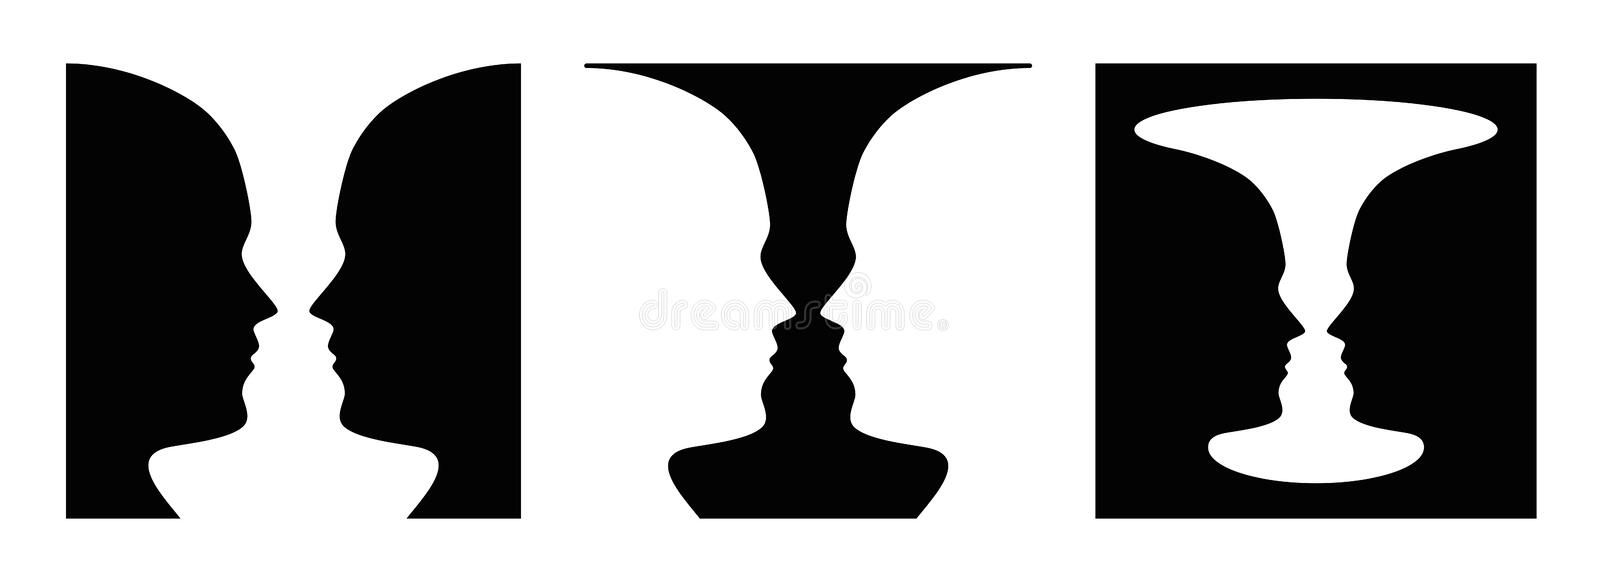 Three times figure ground perception, face and vase. Three times figure-ground perception, face and vase. Figure-ground organization. Perceptual grouping. In vector illustration